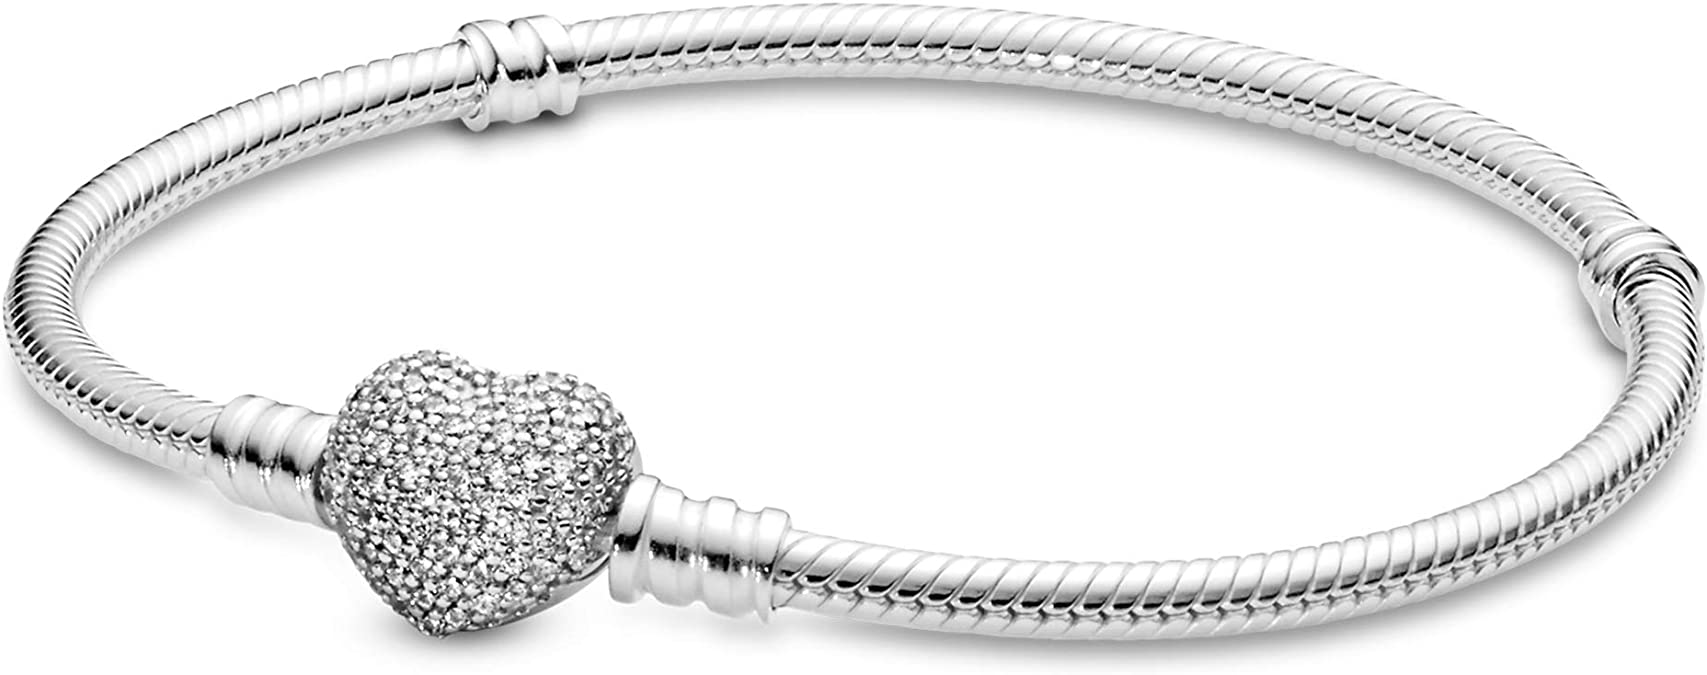 Bloc cardiaque Bead Charme Argent Sterling 925 Love Jewelry Making Collier Bracelet